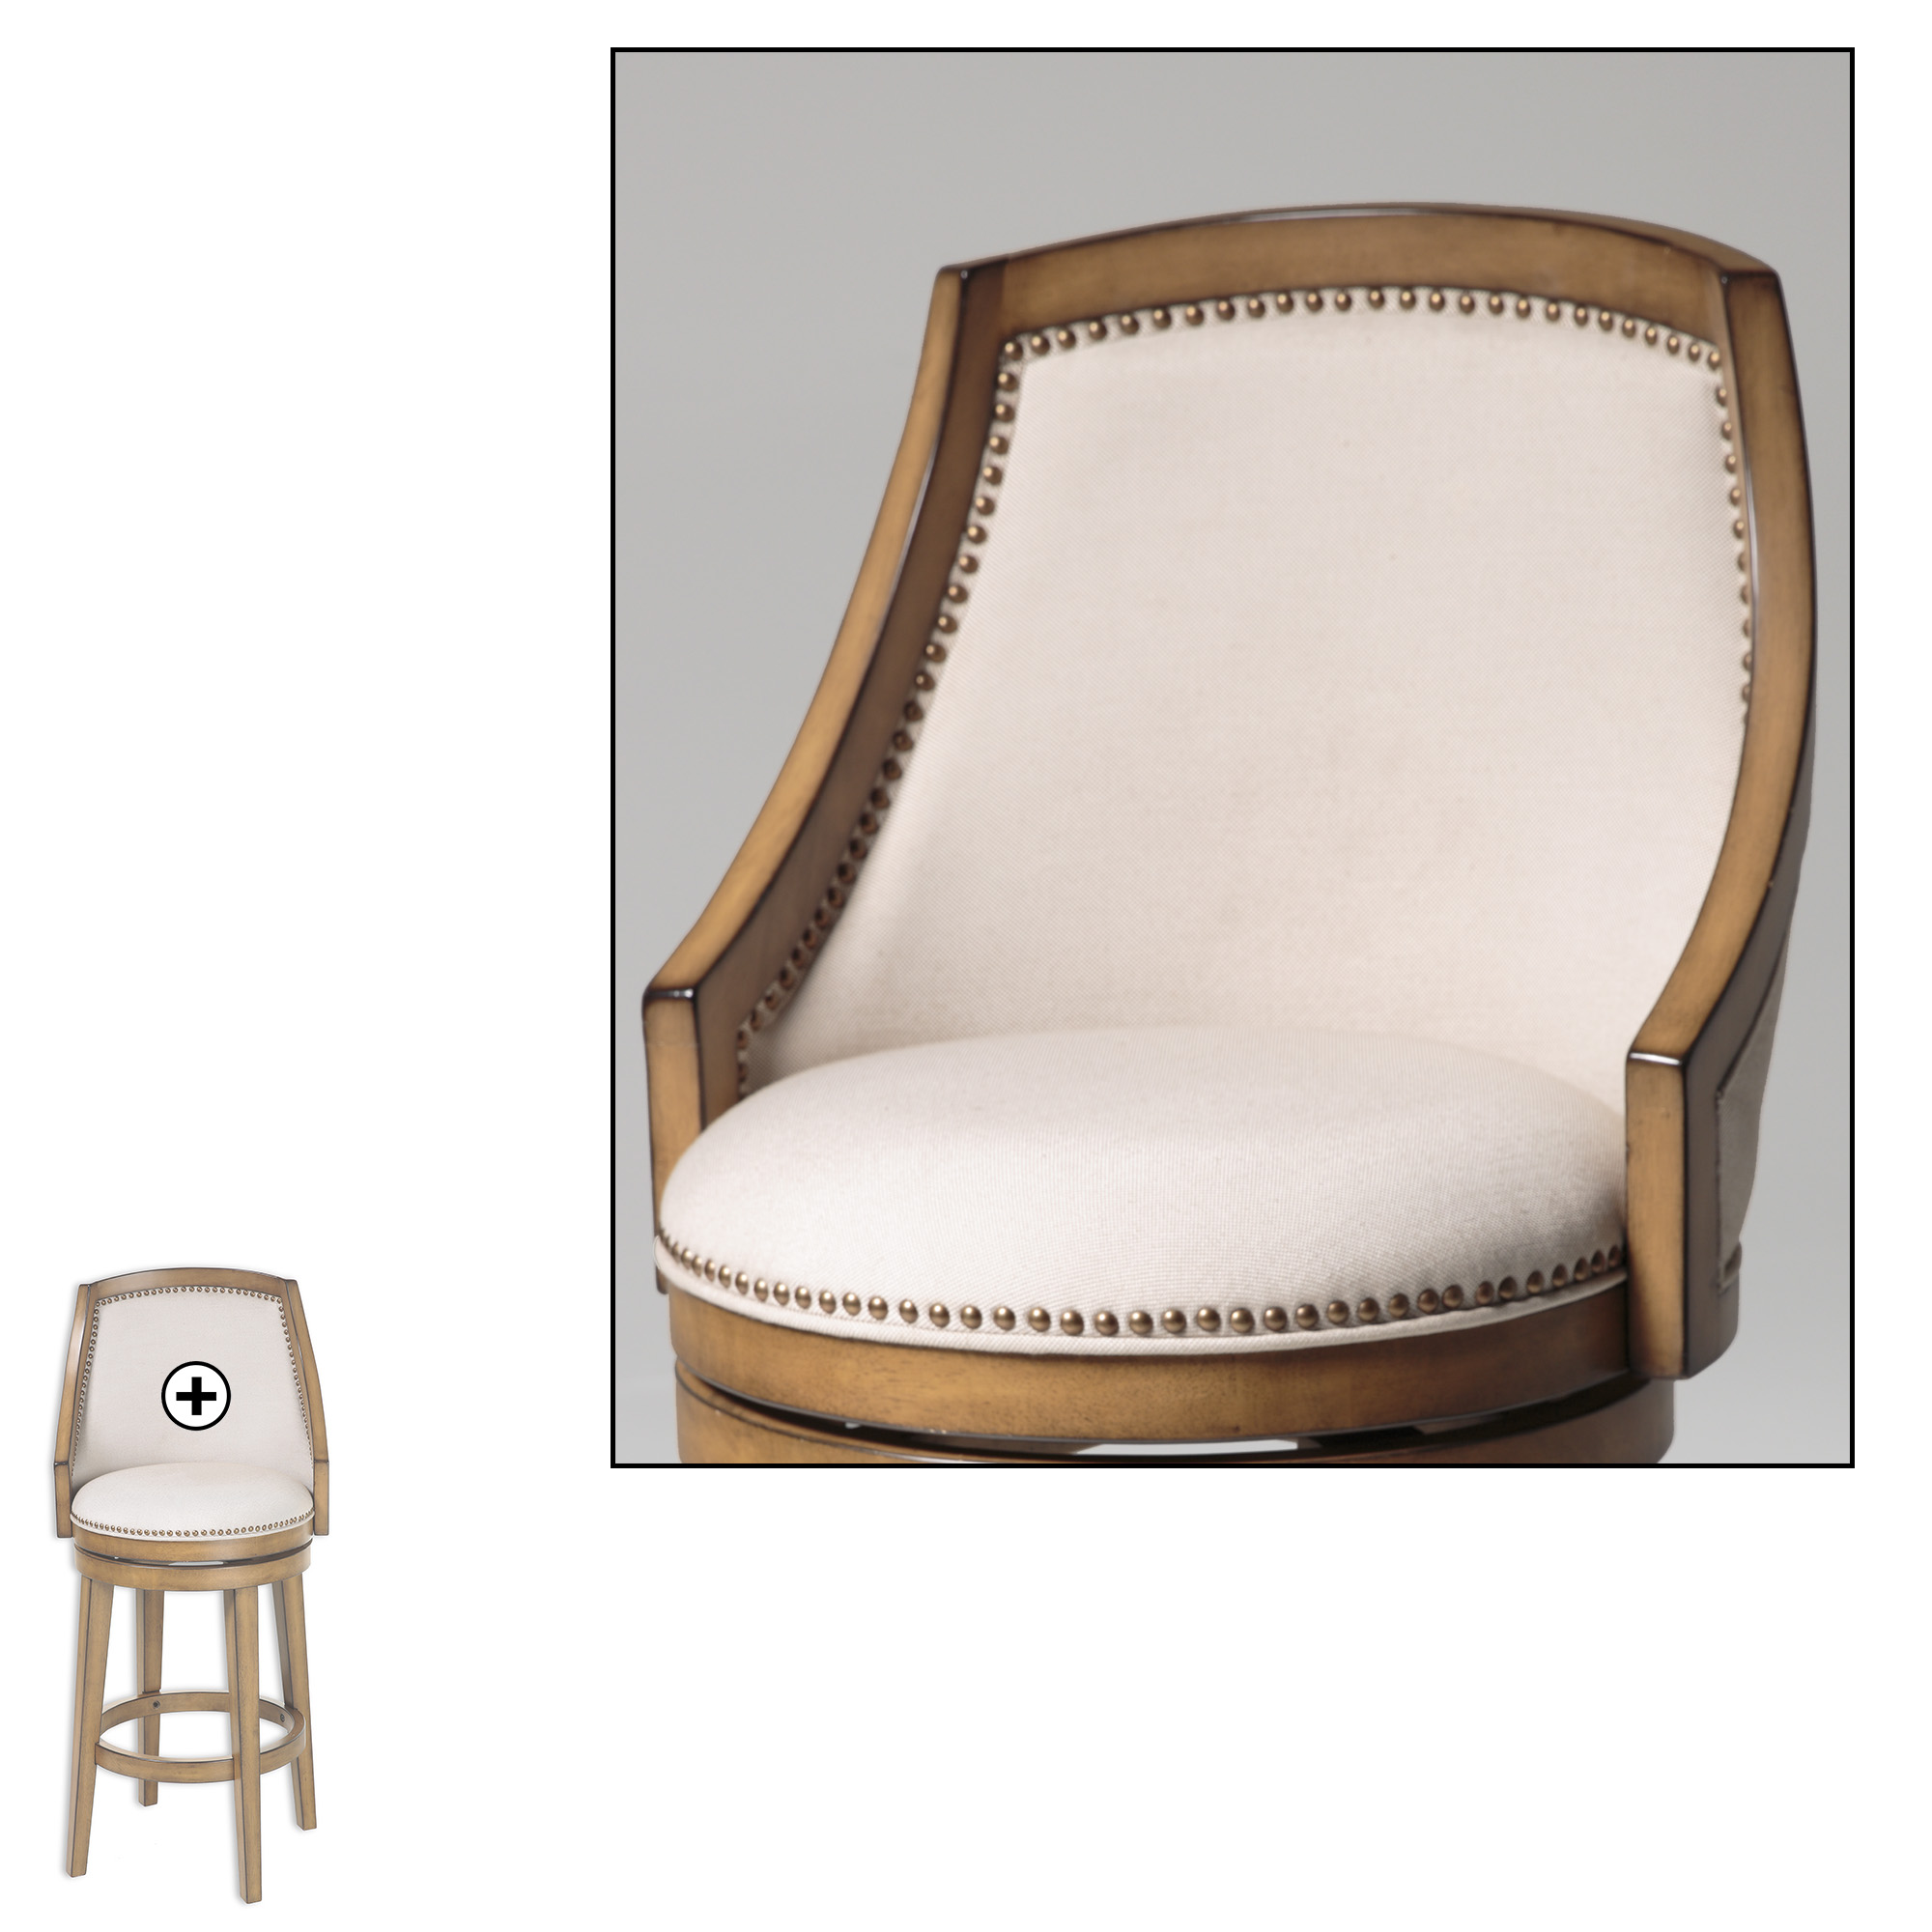 C1X100Fashion Bed Group Charleston Wood Barstool with Putty ...